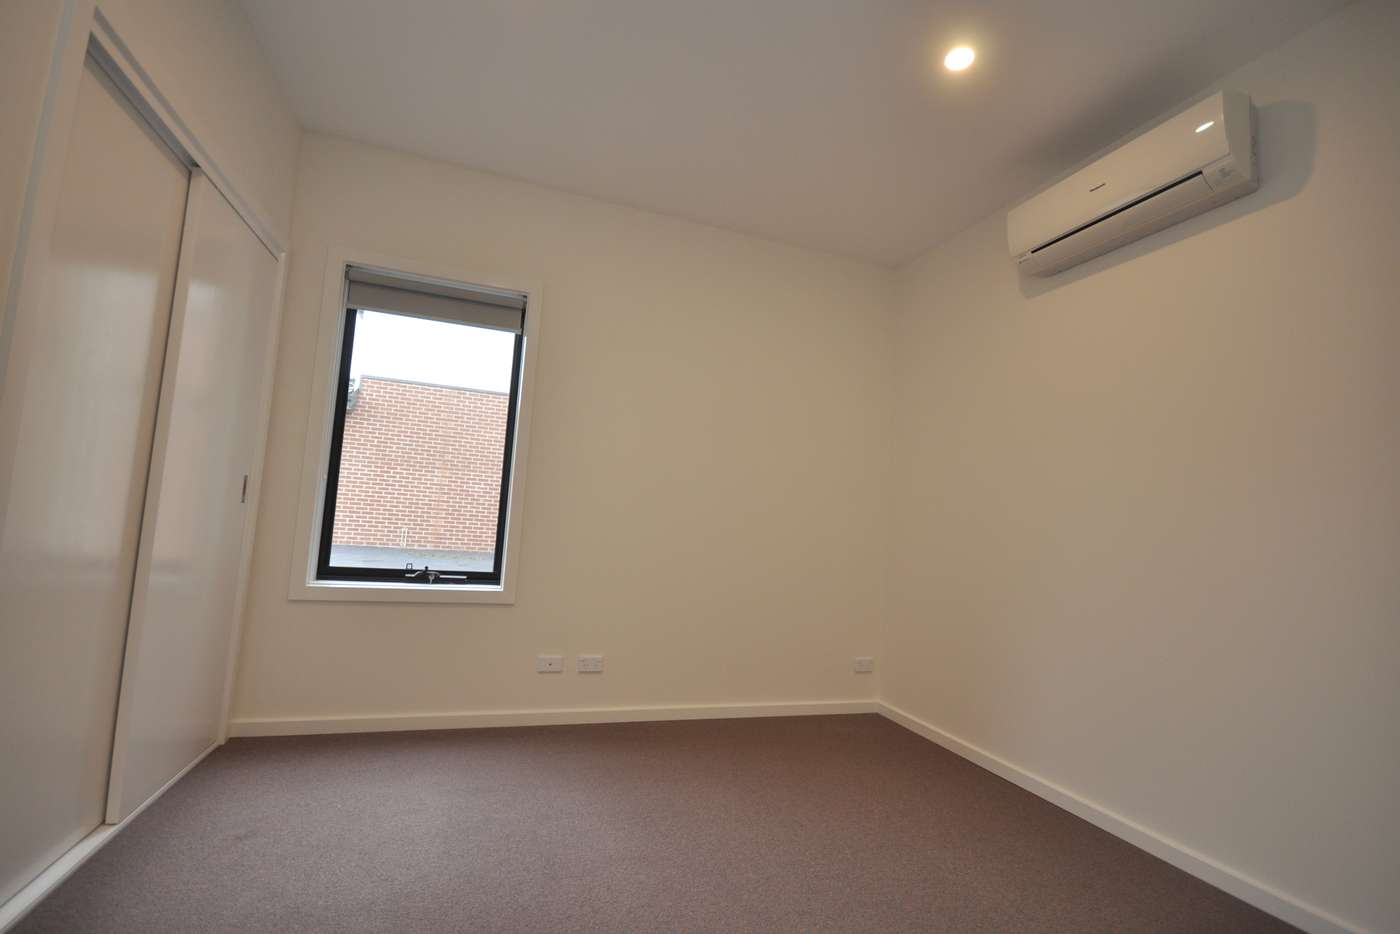 Seventh view of Homely townhouse listing, 4/19 Prospect Street, Glenroy VIC 3046